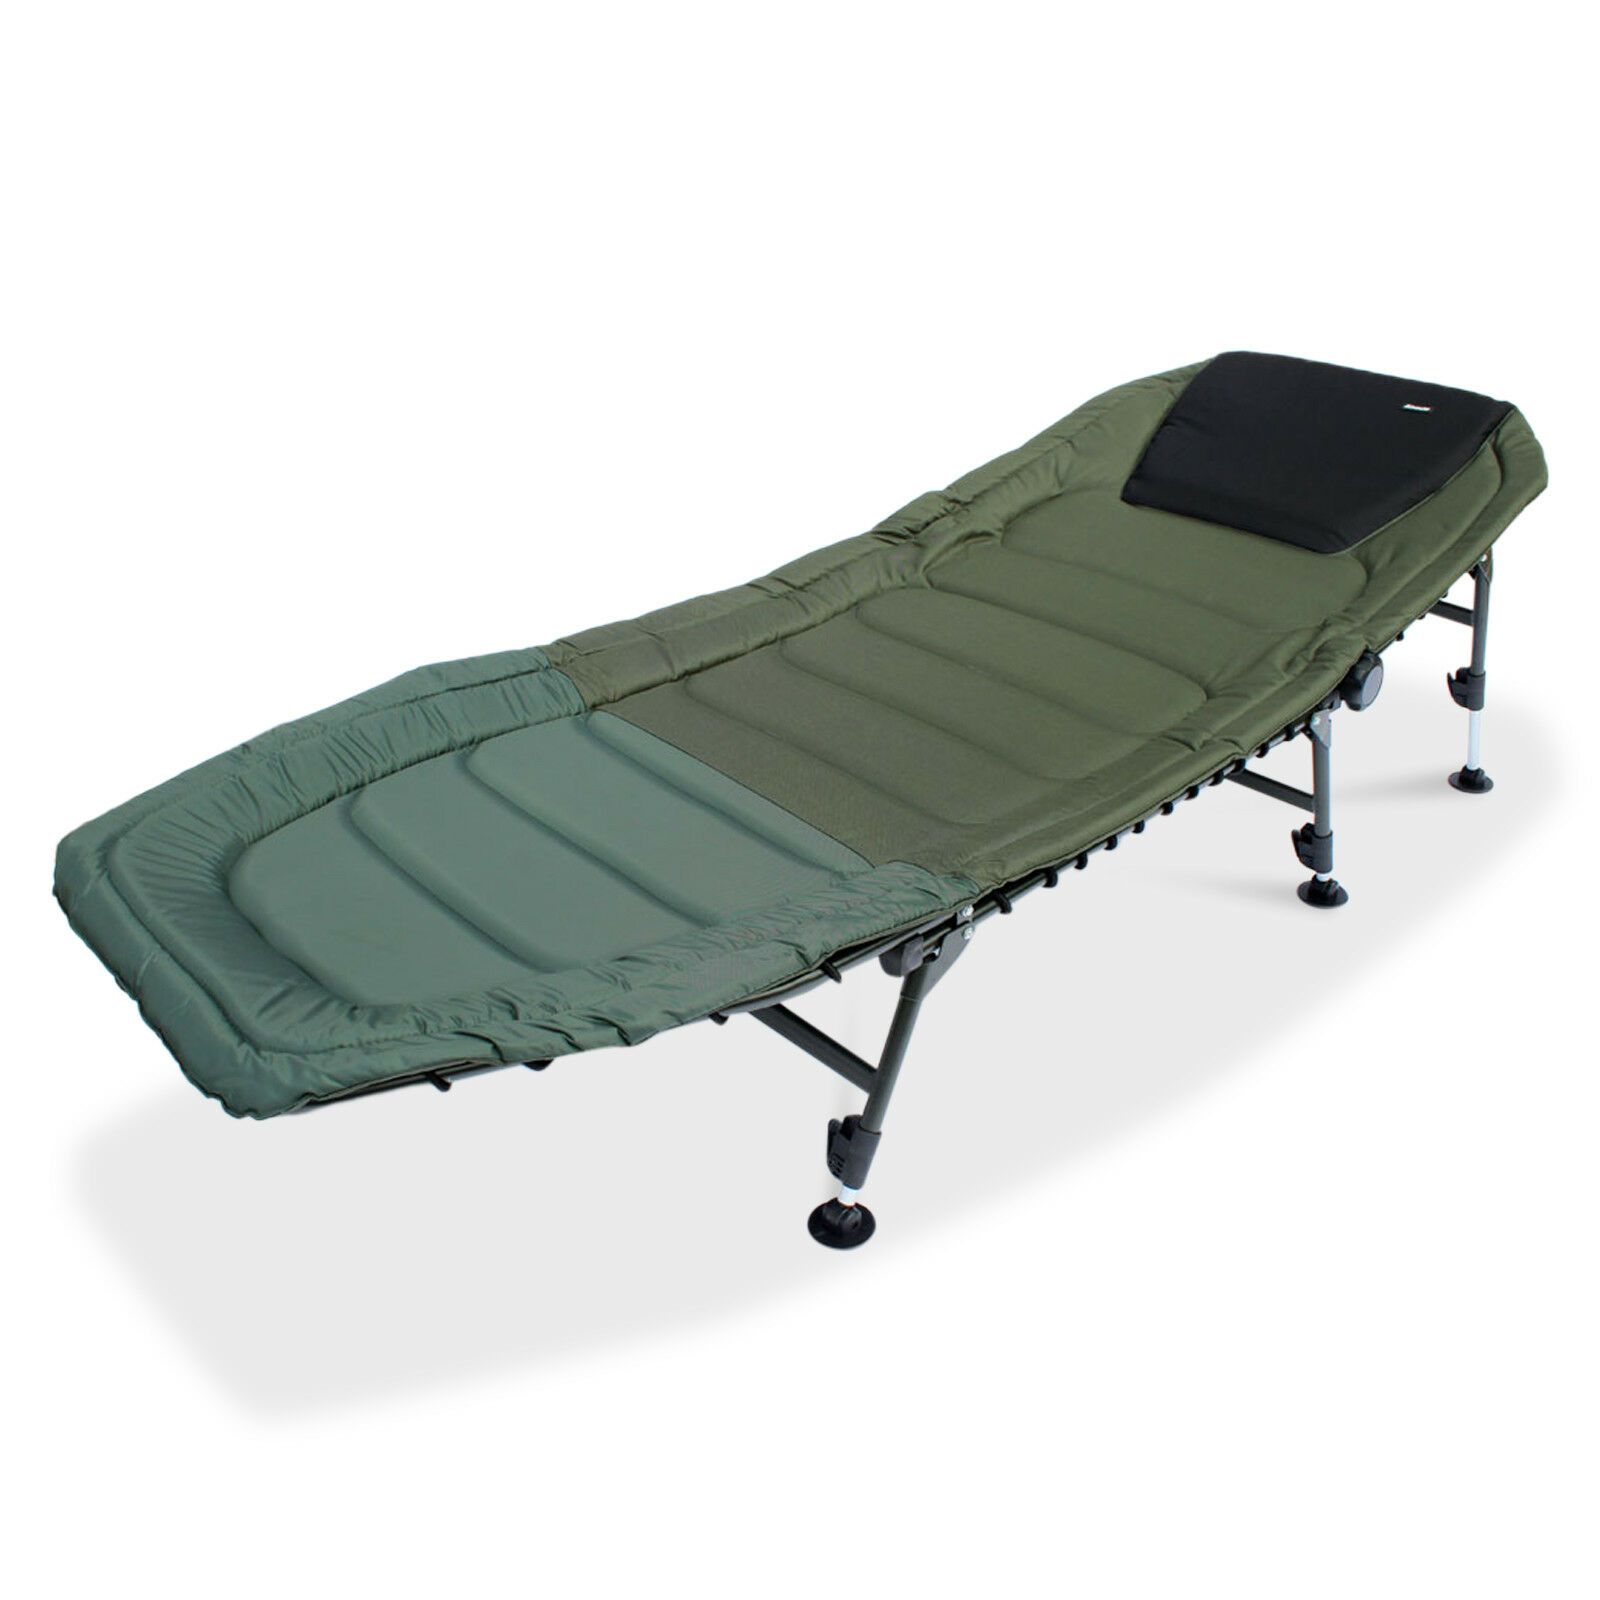 ABODE® DLX Oxford 6 Leg Super™ Carp Fishing Bed Chair Camping Bedchair